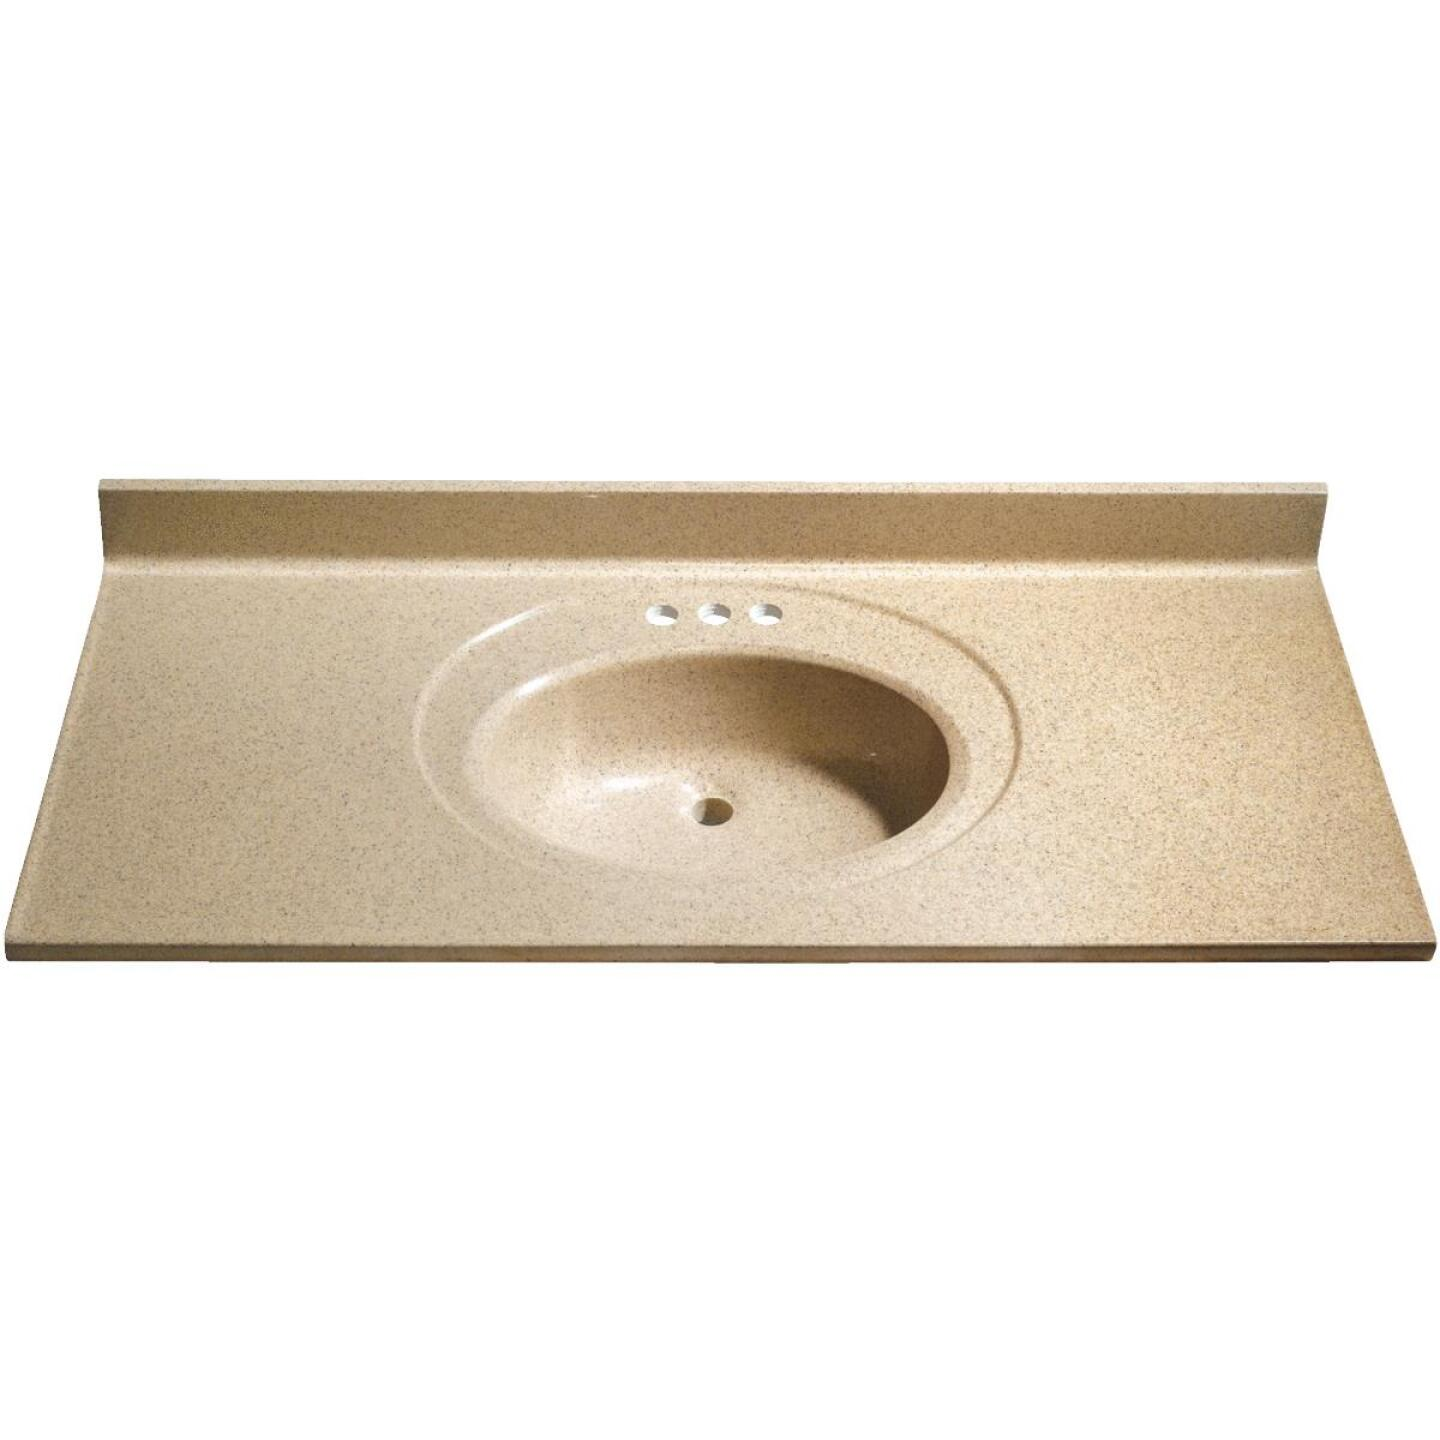 Bertch 49 In. W x 22 In. D Sand Faux Granite Vanity Top with Oval Bowl Image 1